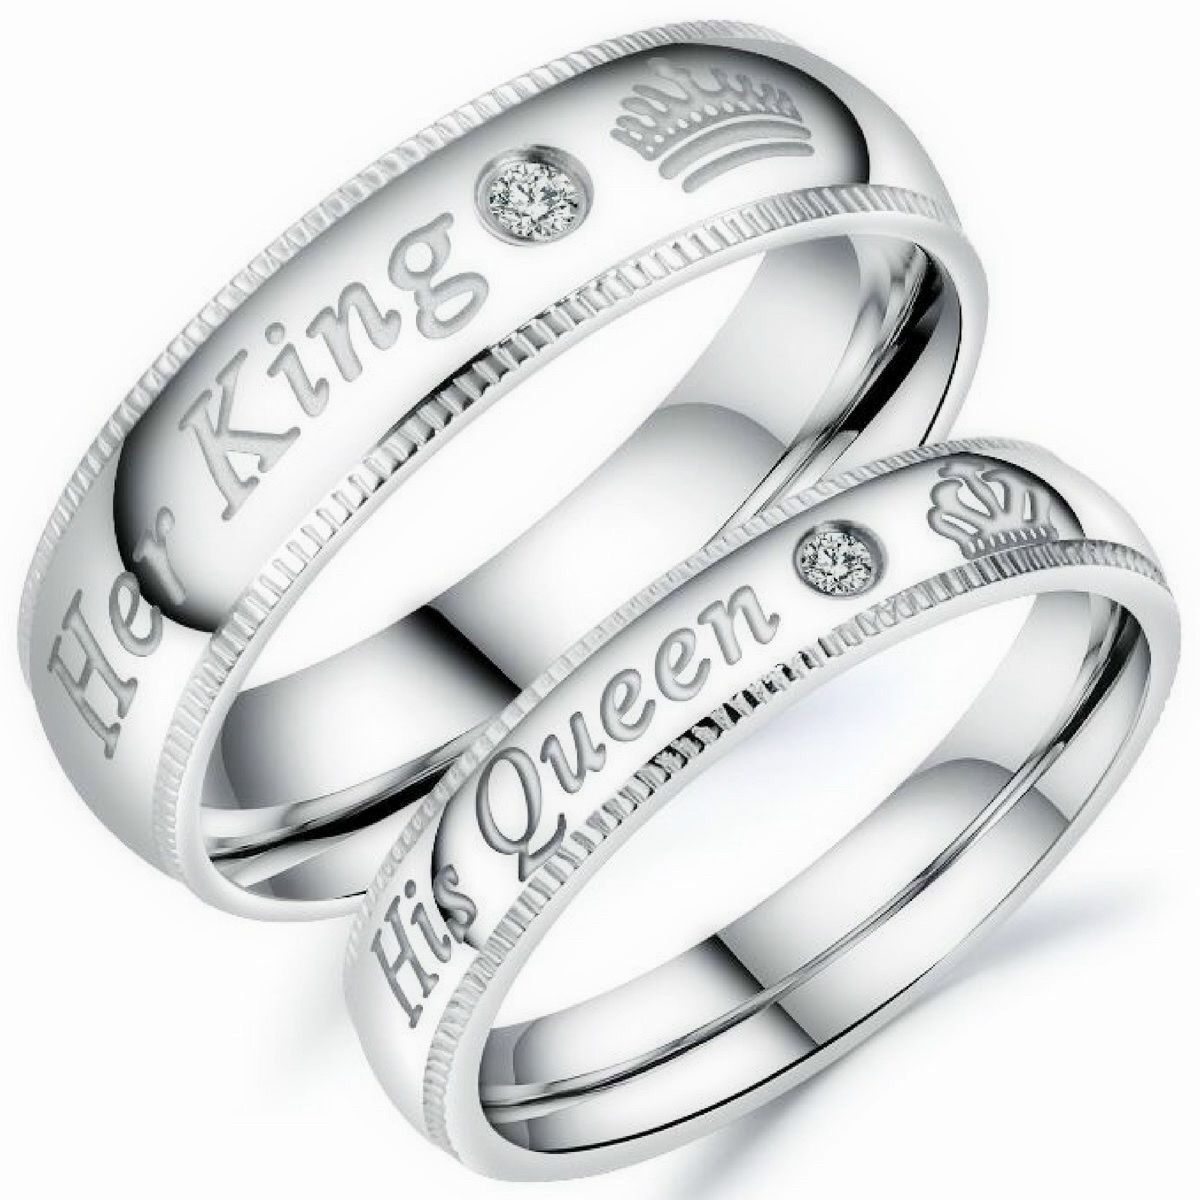 Stainless Steel Wedding Band Set Anniversary Engagement Promise Ring Price Separated King and Queen Rings for Him and Her Wedding Band MY KING MY QUEEN Ring